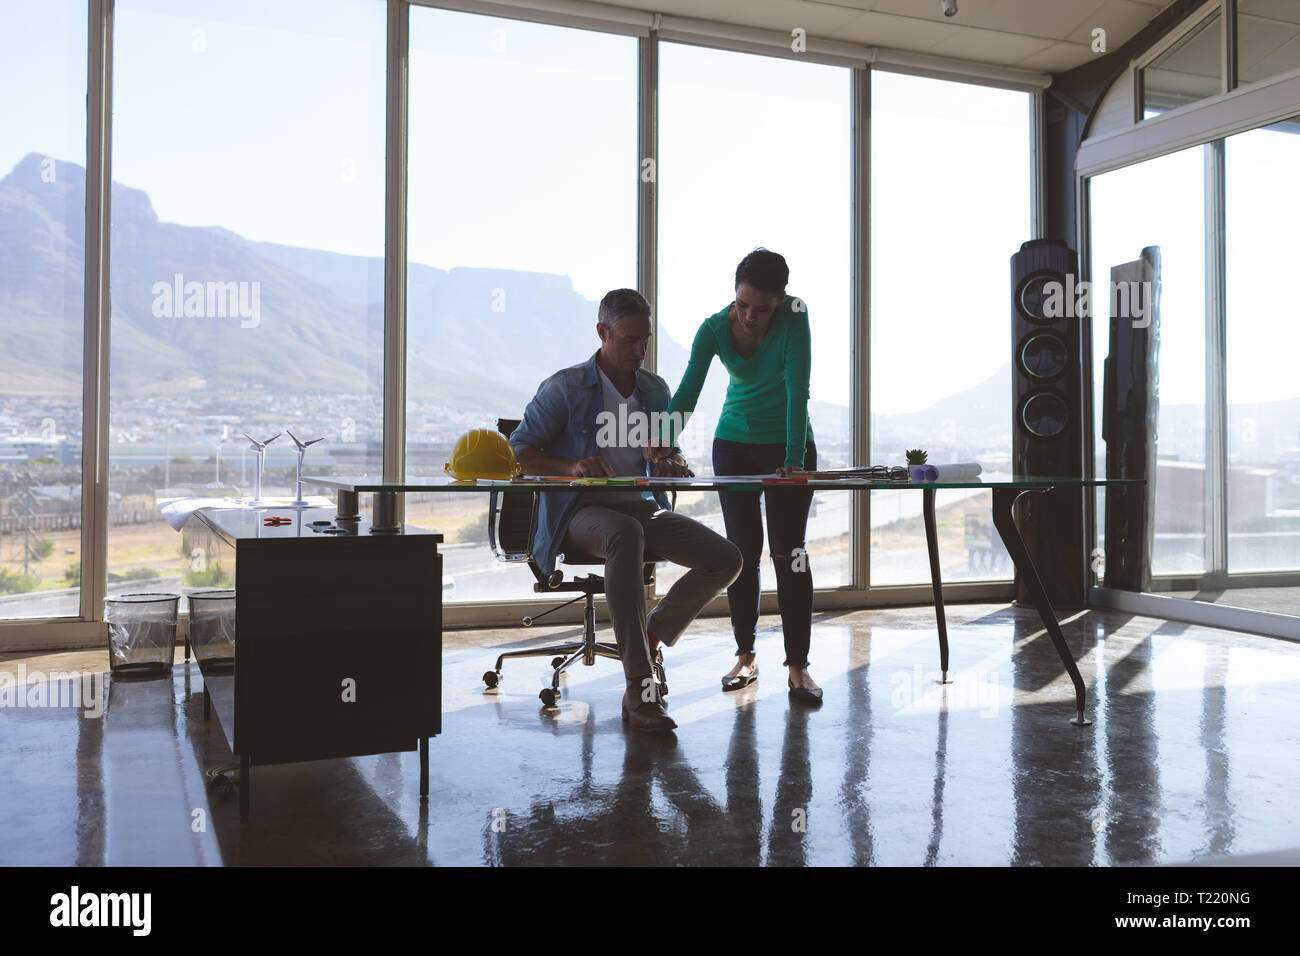 Architectures discussing over blue print at desk in office - Stock Image